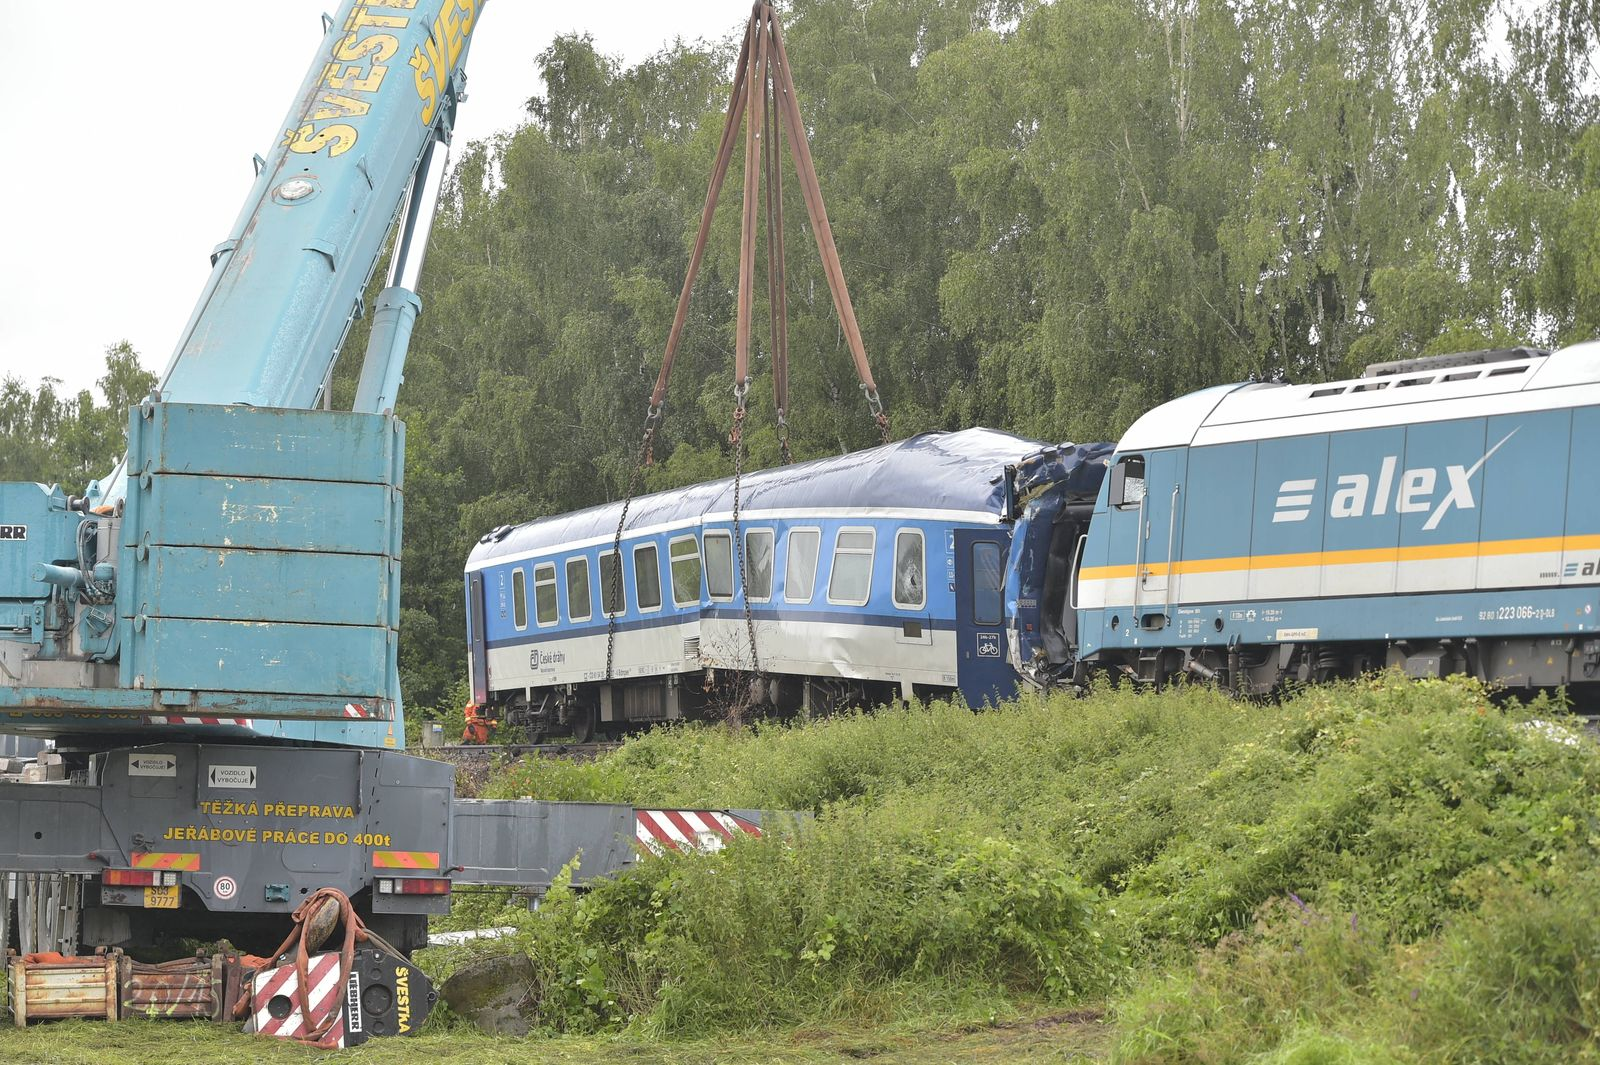 Removing damaged locomotives and wagons using heavy machinery started after yesterday s collision of two trains on the s